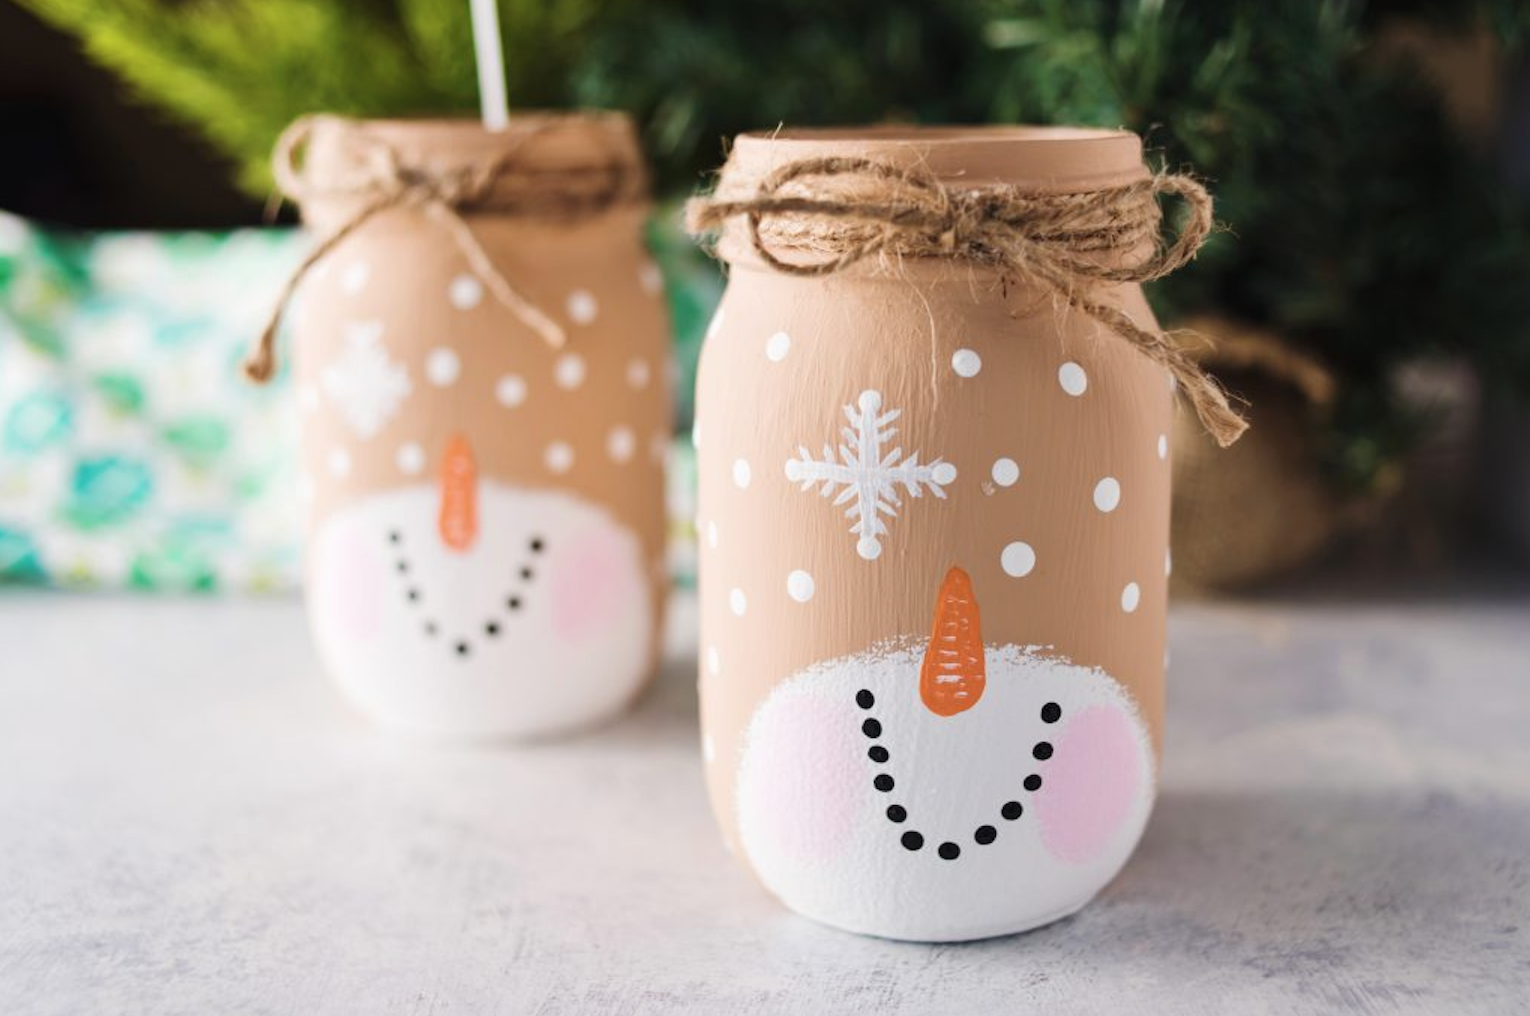 Christmas Craft Ideas For Teenagers Part - 20: Teen Christmas Craft Ideas